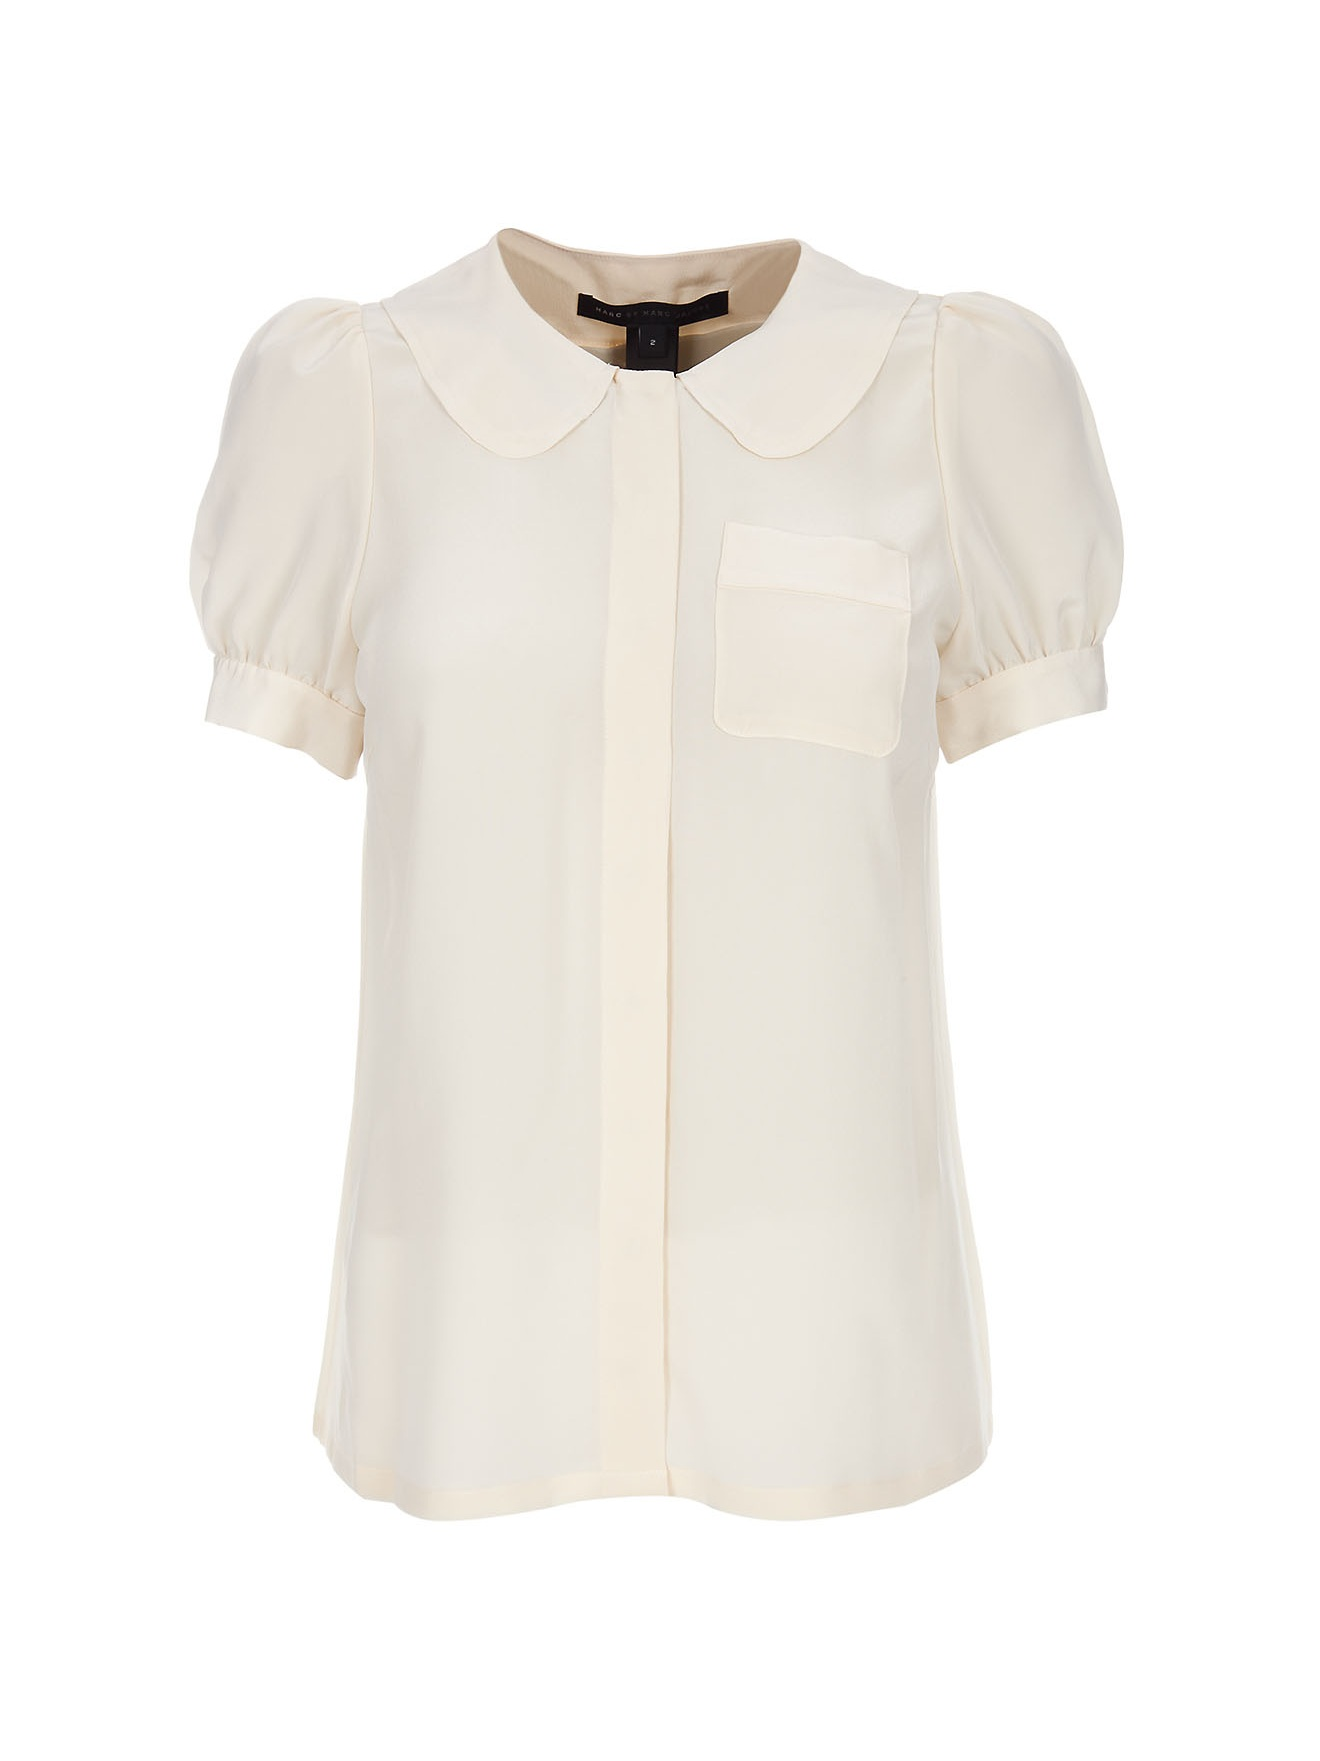 Marc by marc jacobs peter pan collar shirt in white cream for White cotton shirt peter pan collar